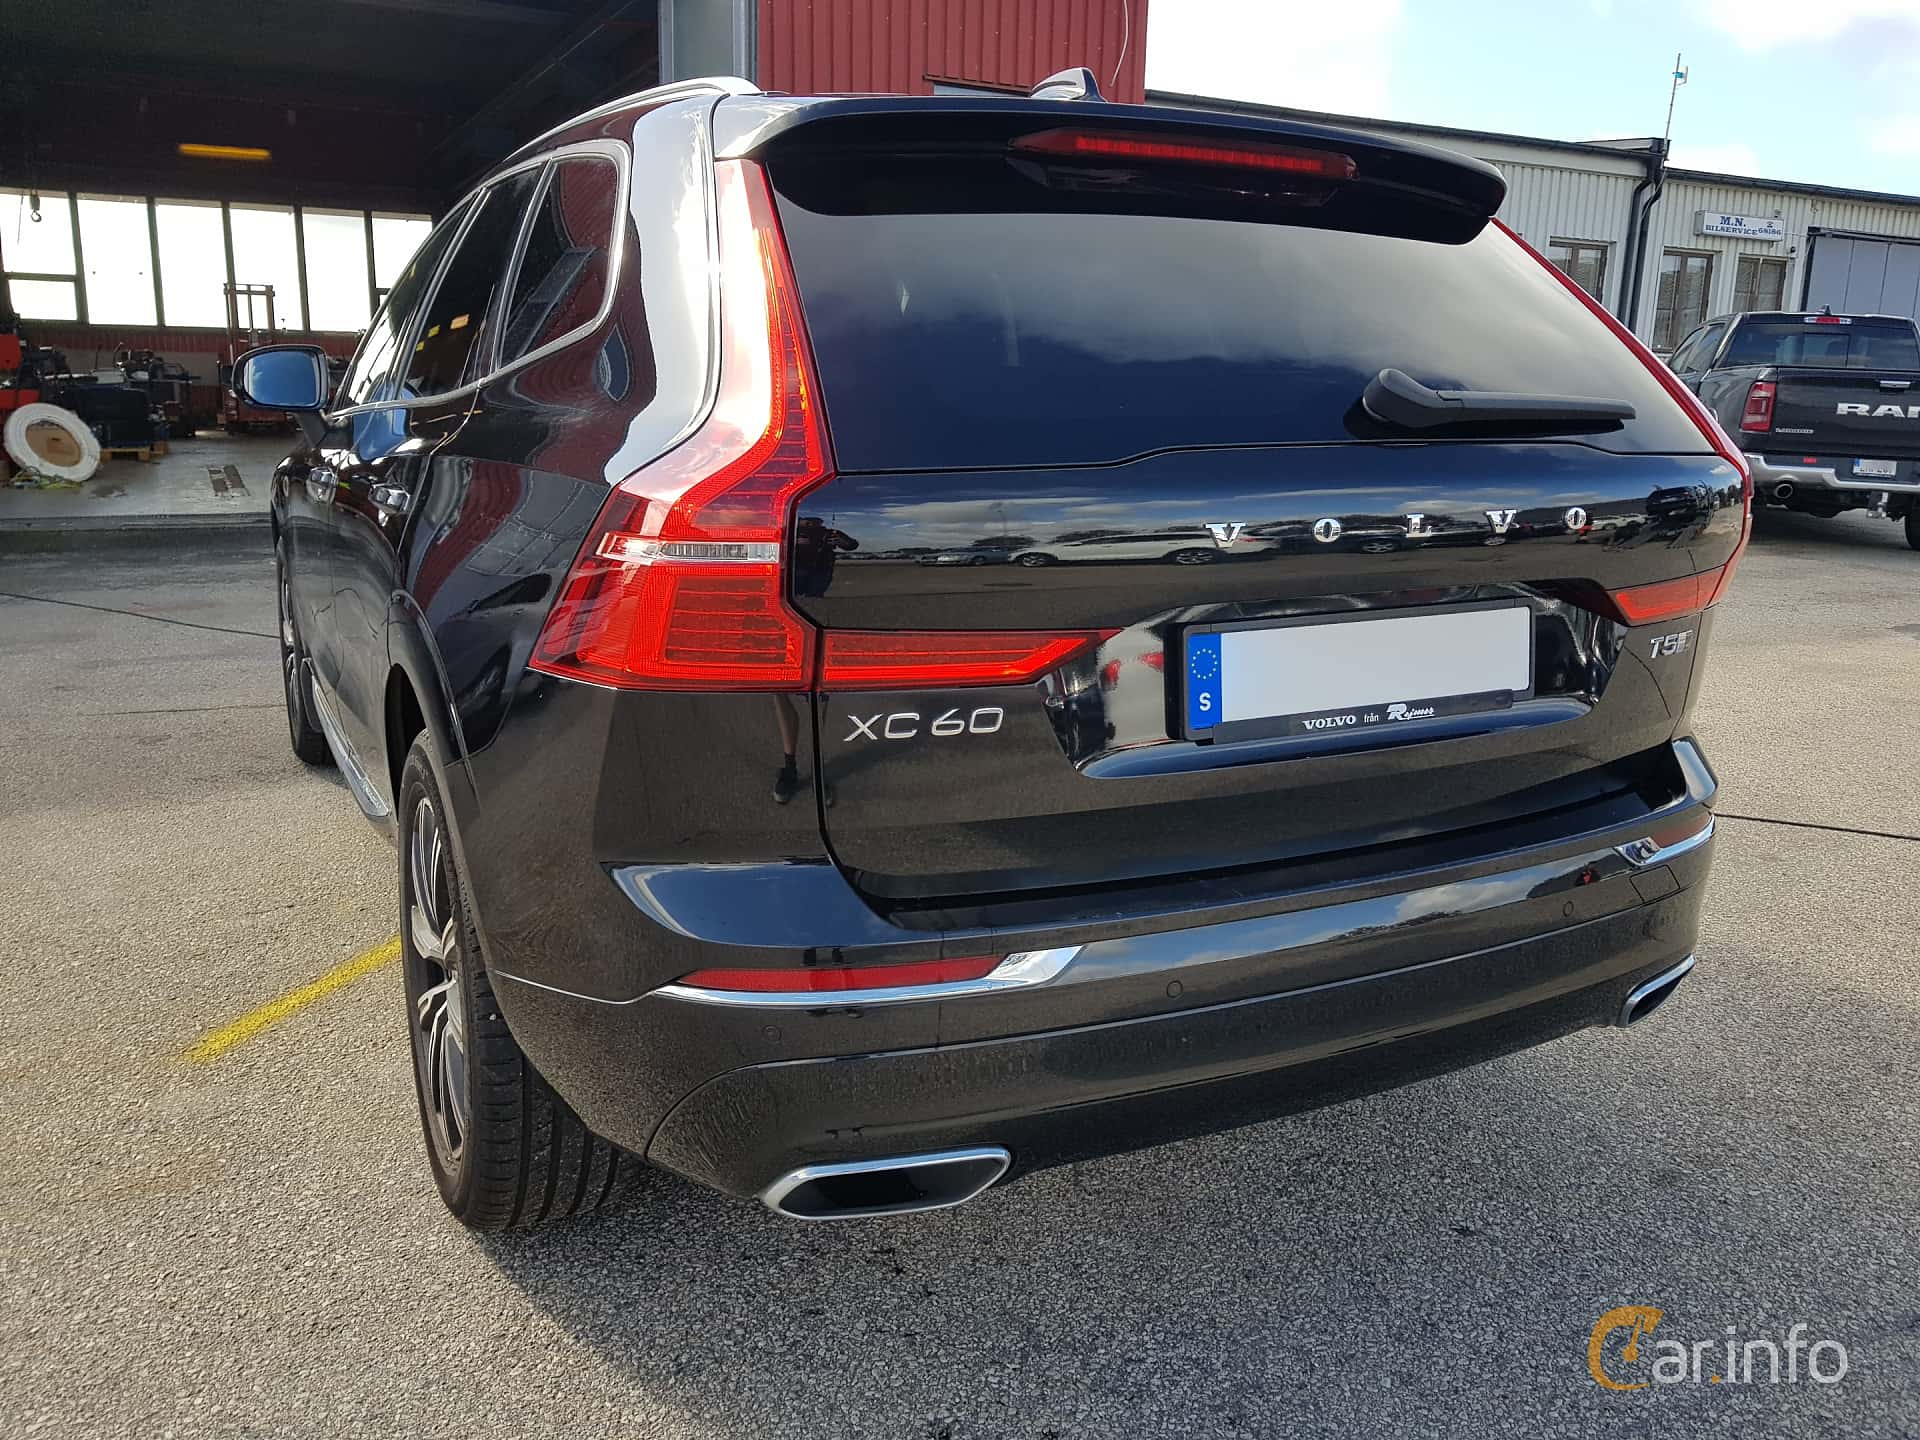 Volvo XC60 T5 AWD Geartronic, 250hp, 2018